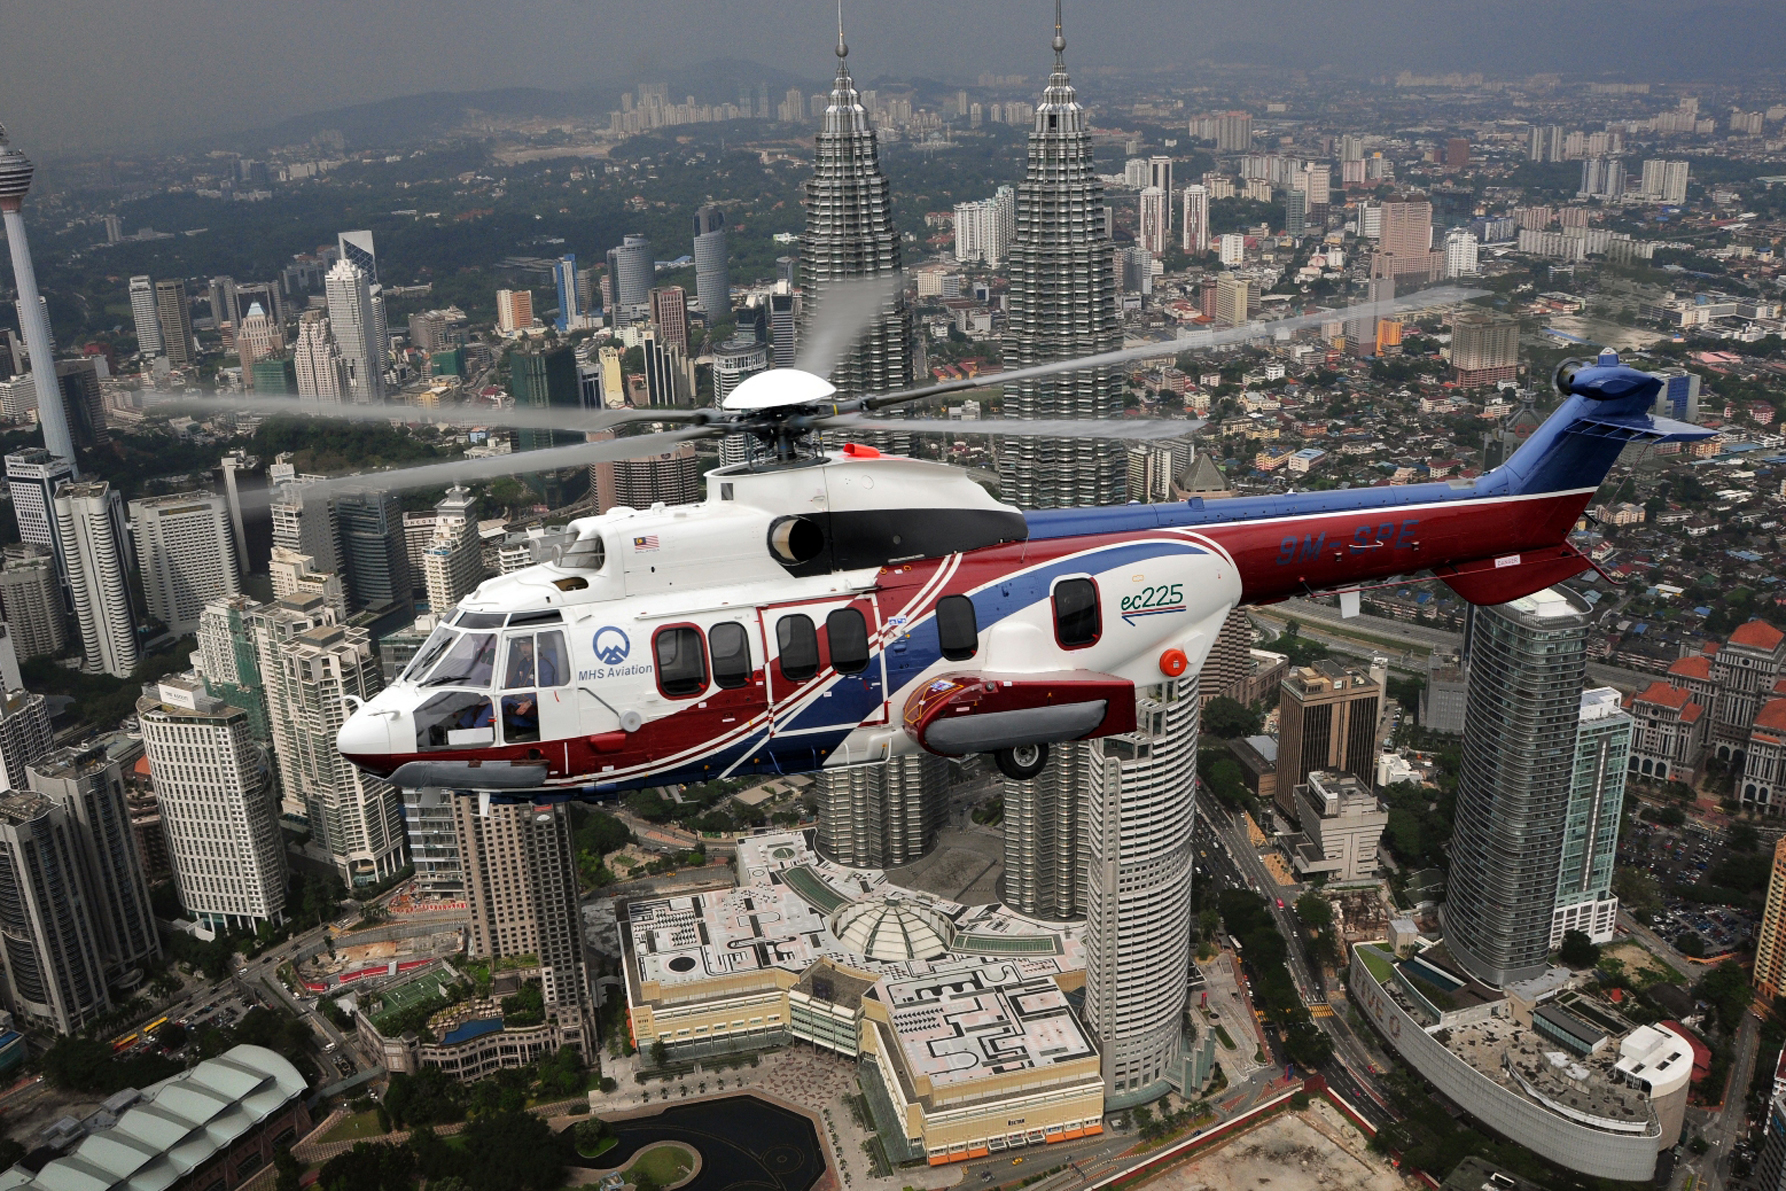 EC225 sales announced at LIMA